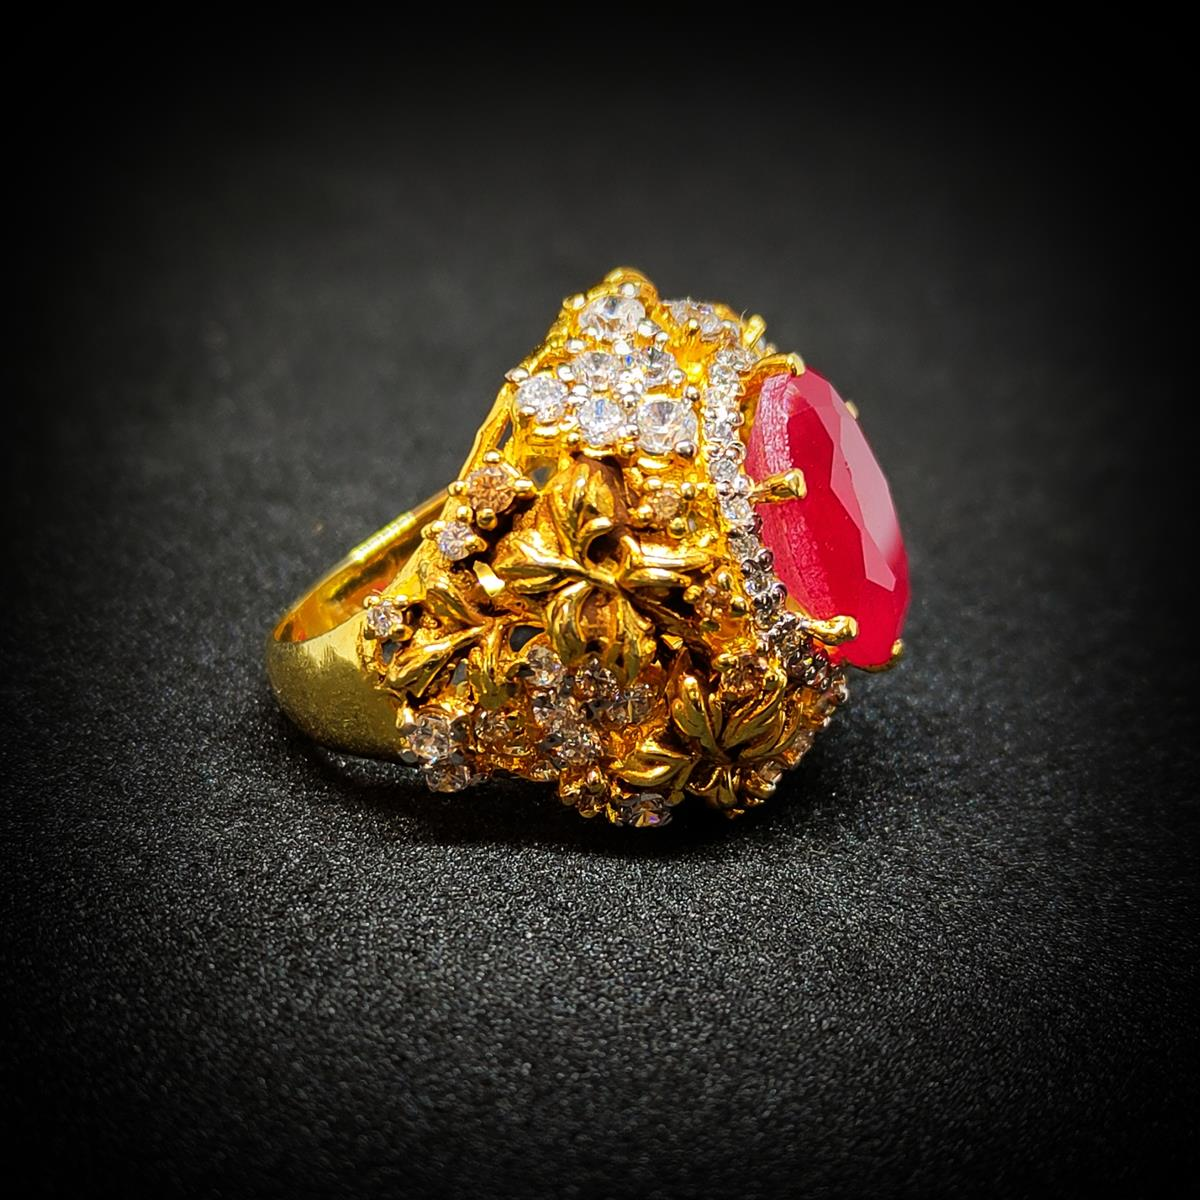 Gold Plated 925 Silver Ring Italian 7 natural gemstones pakistan + 925 silver jewelry online